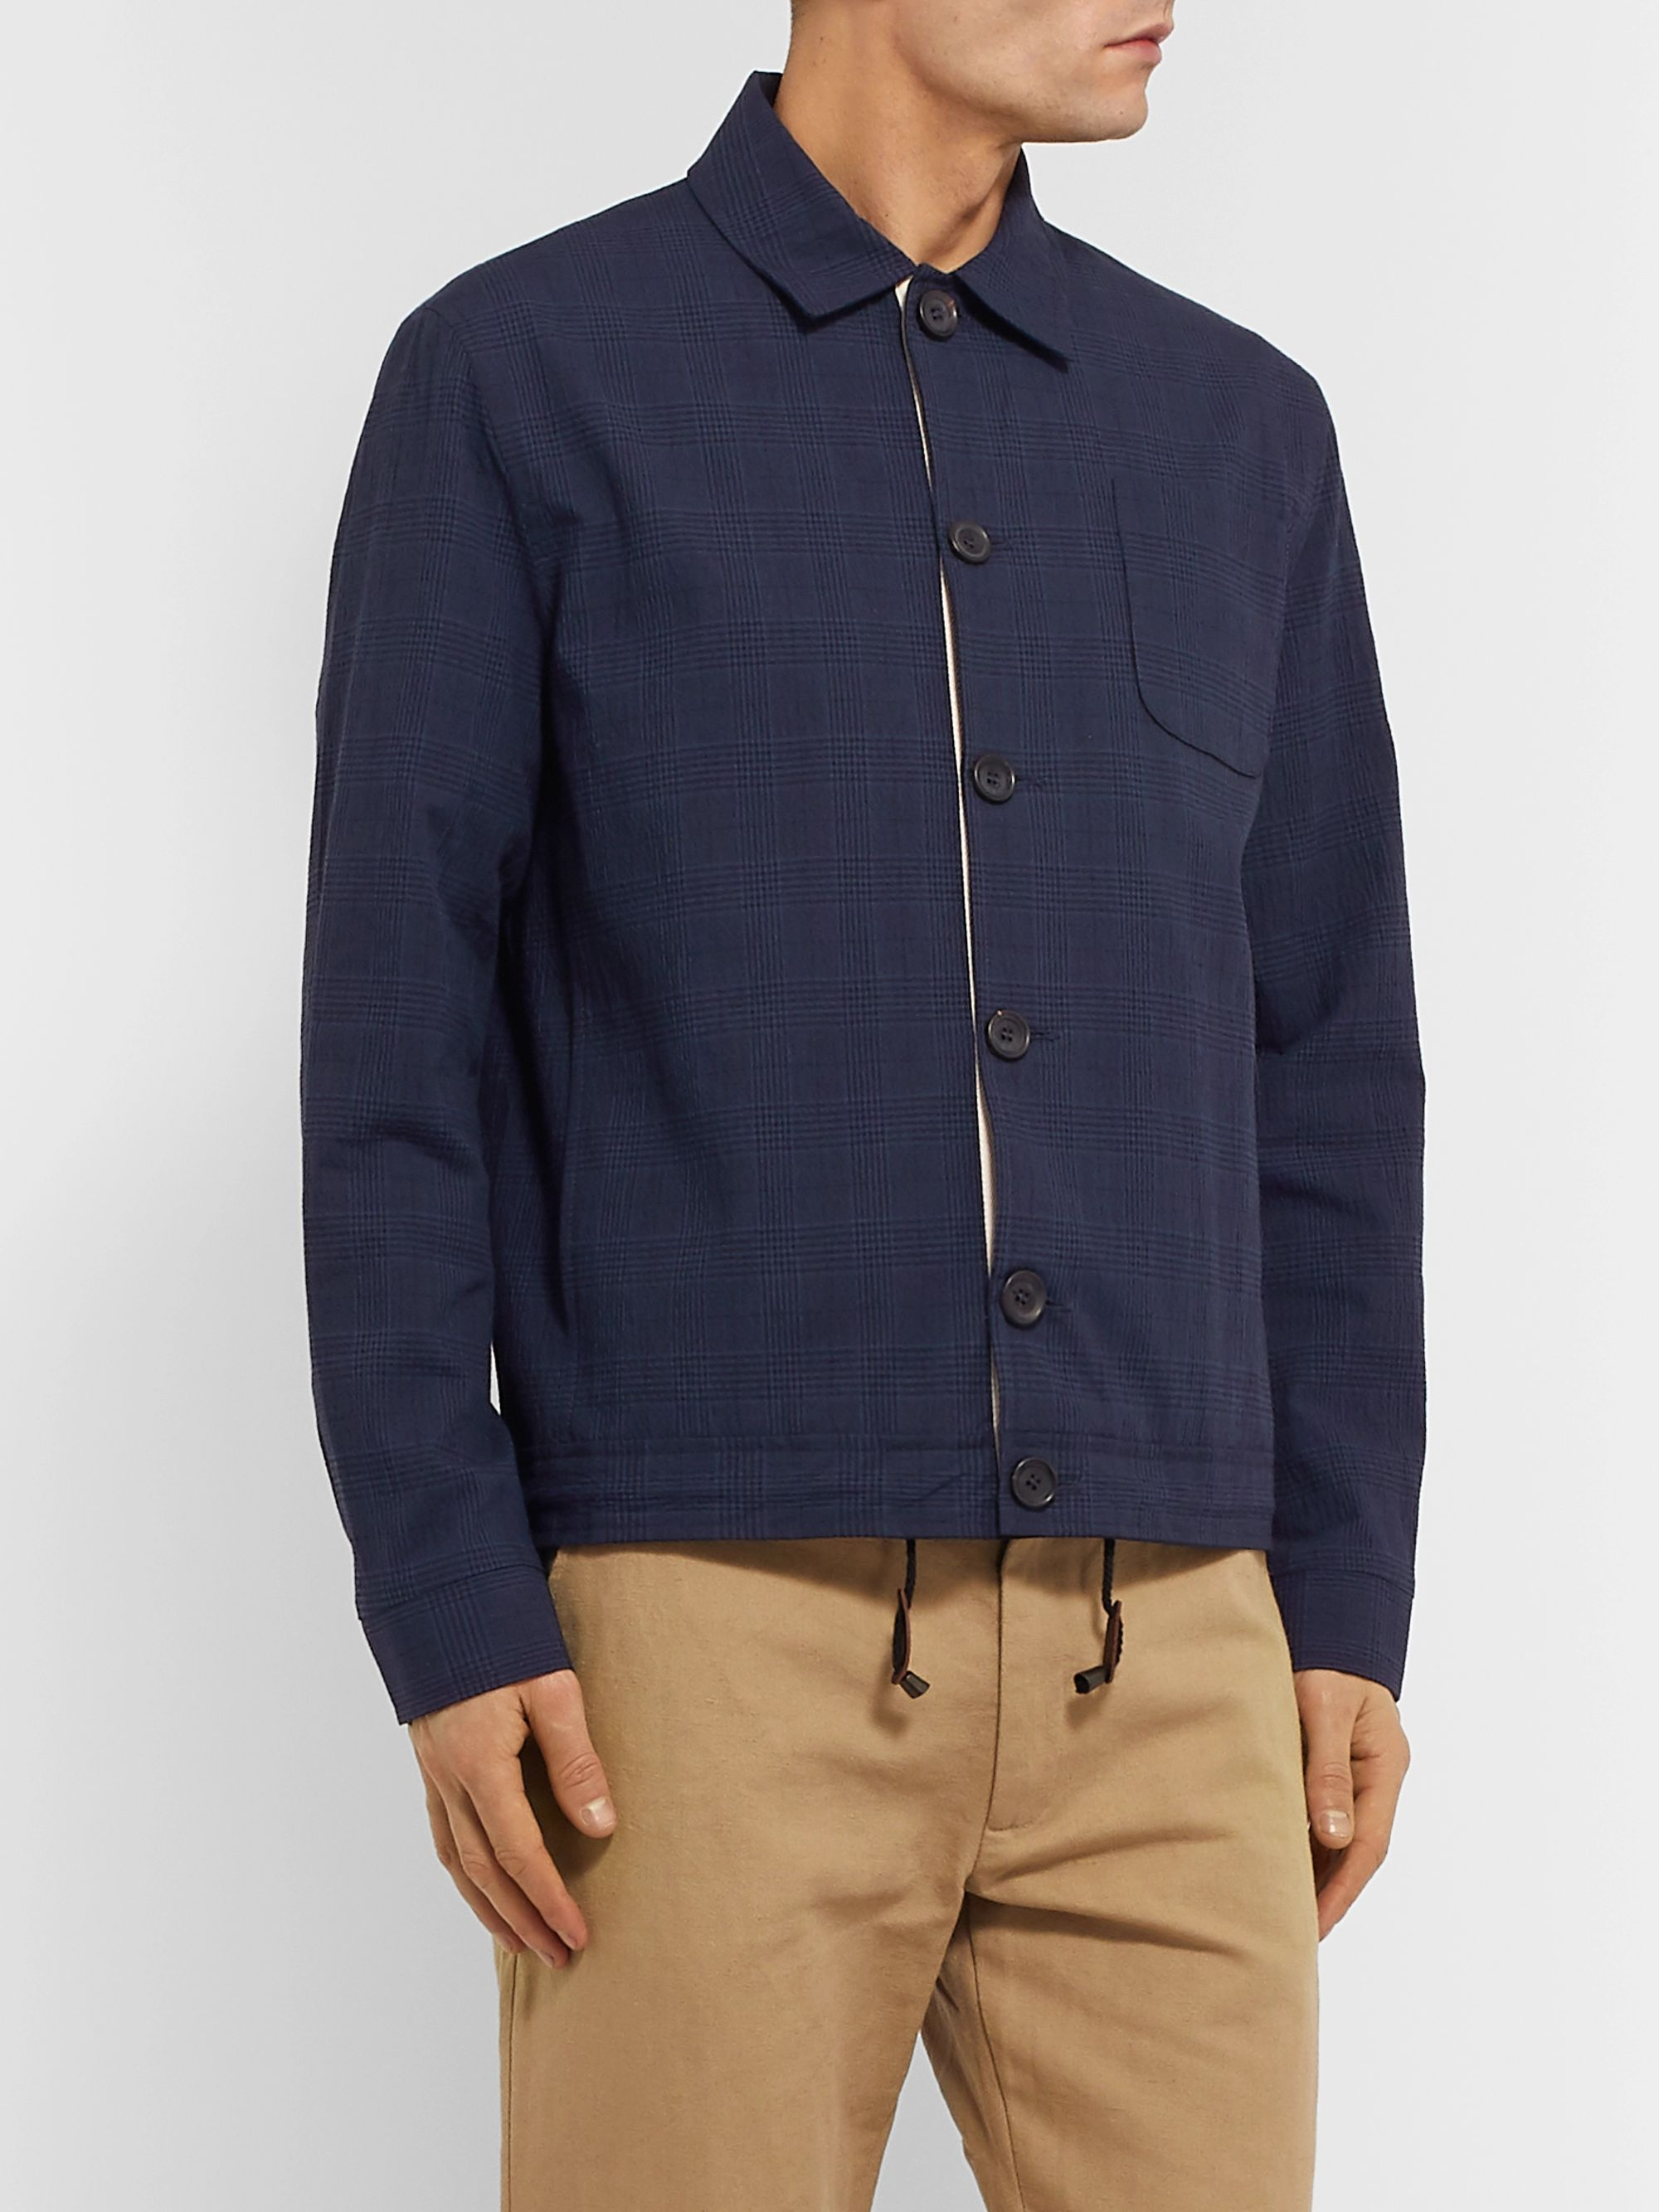 Oliver Spencer Buckland Slim-Fit Checked Cotton-Blend Jacket